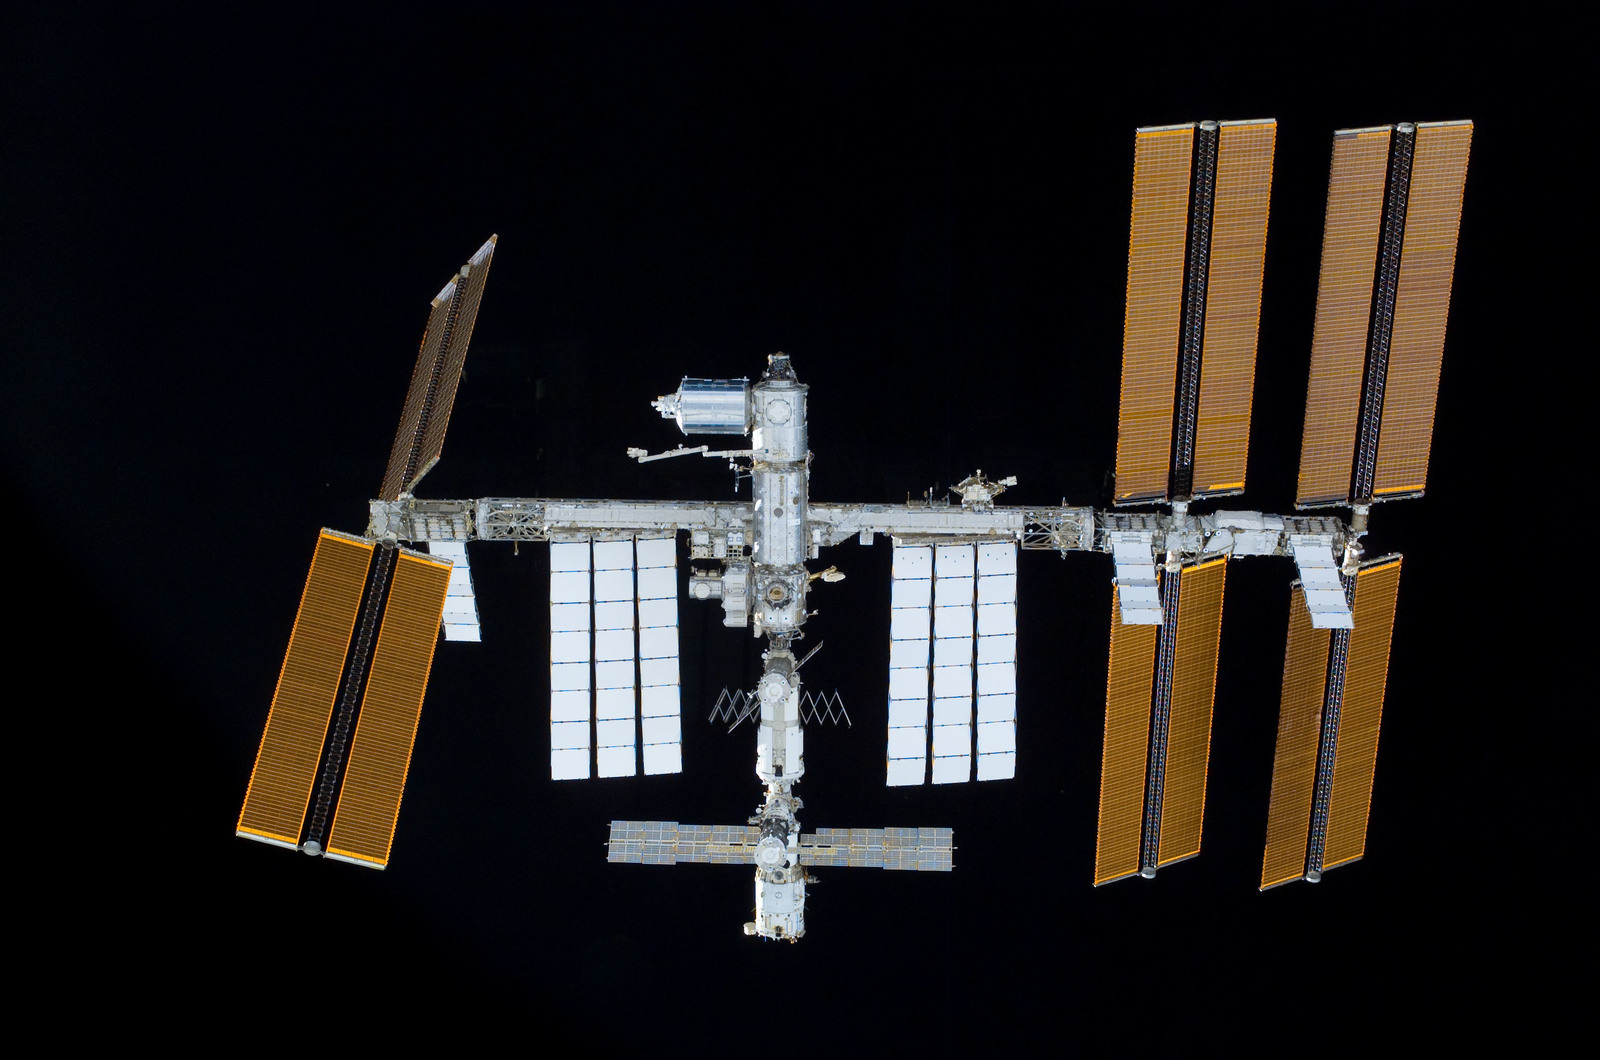 S122E011032 - STS-122 - View of ISS after STS-122 Undocking